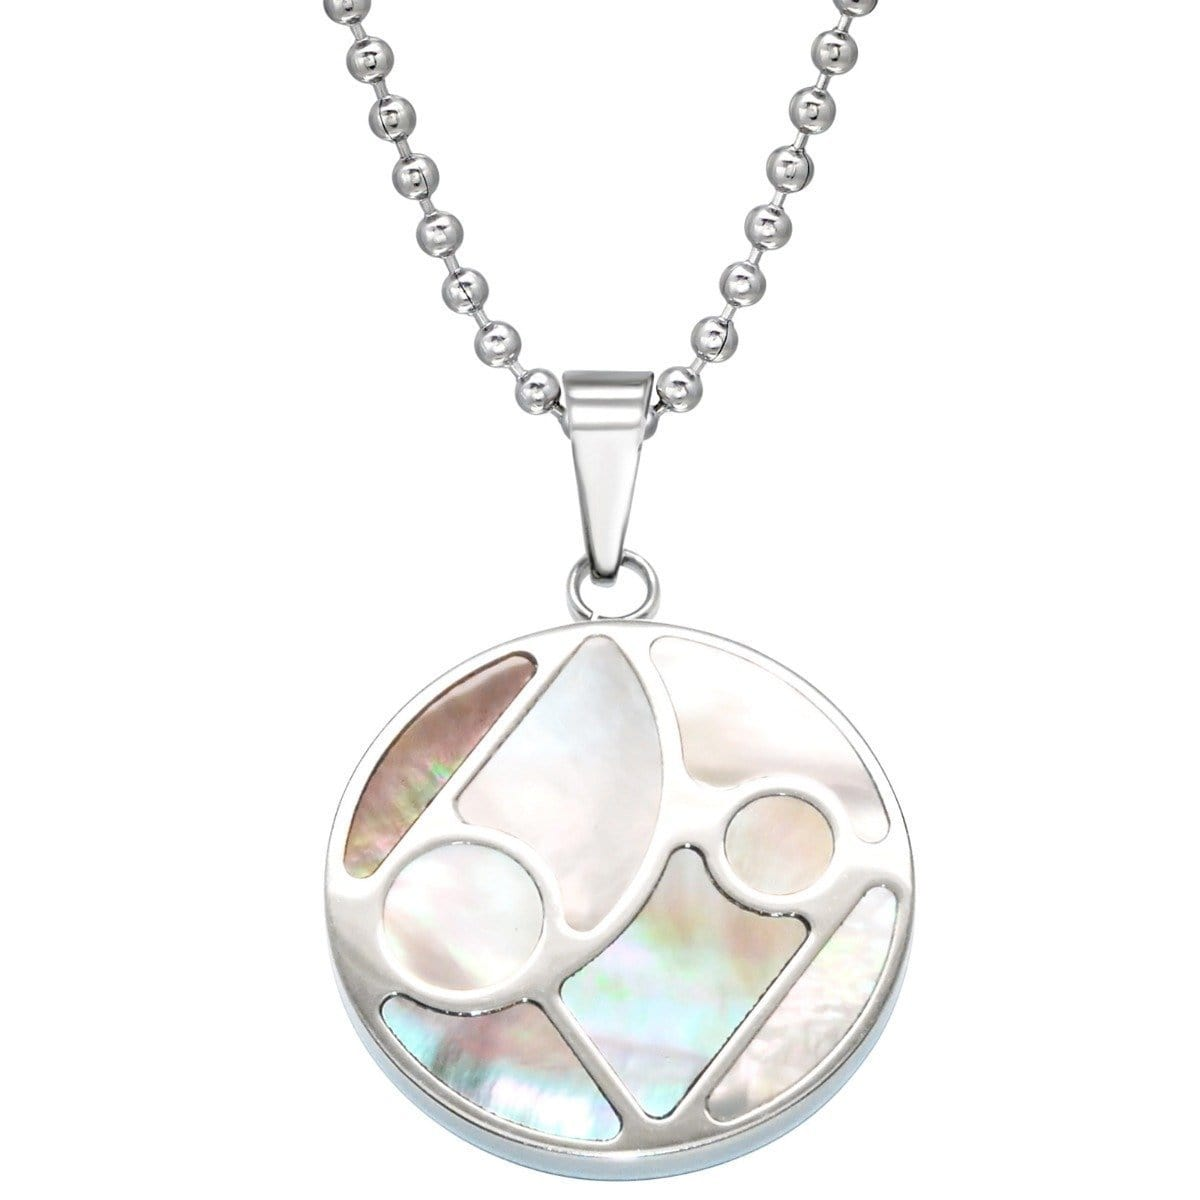 Mosaic Steel Pendant Necklace with Shell